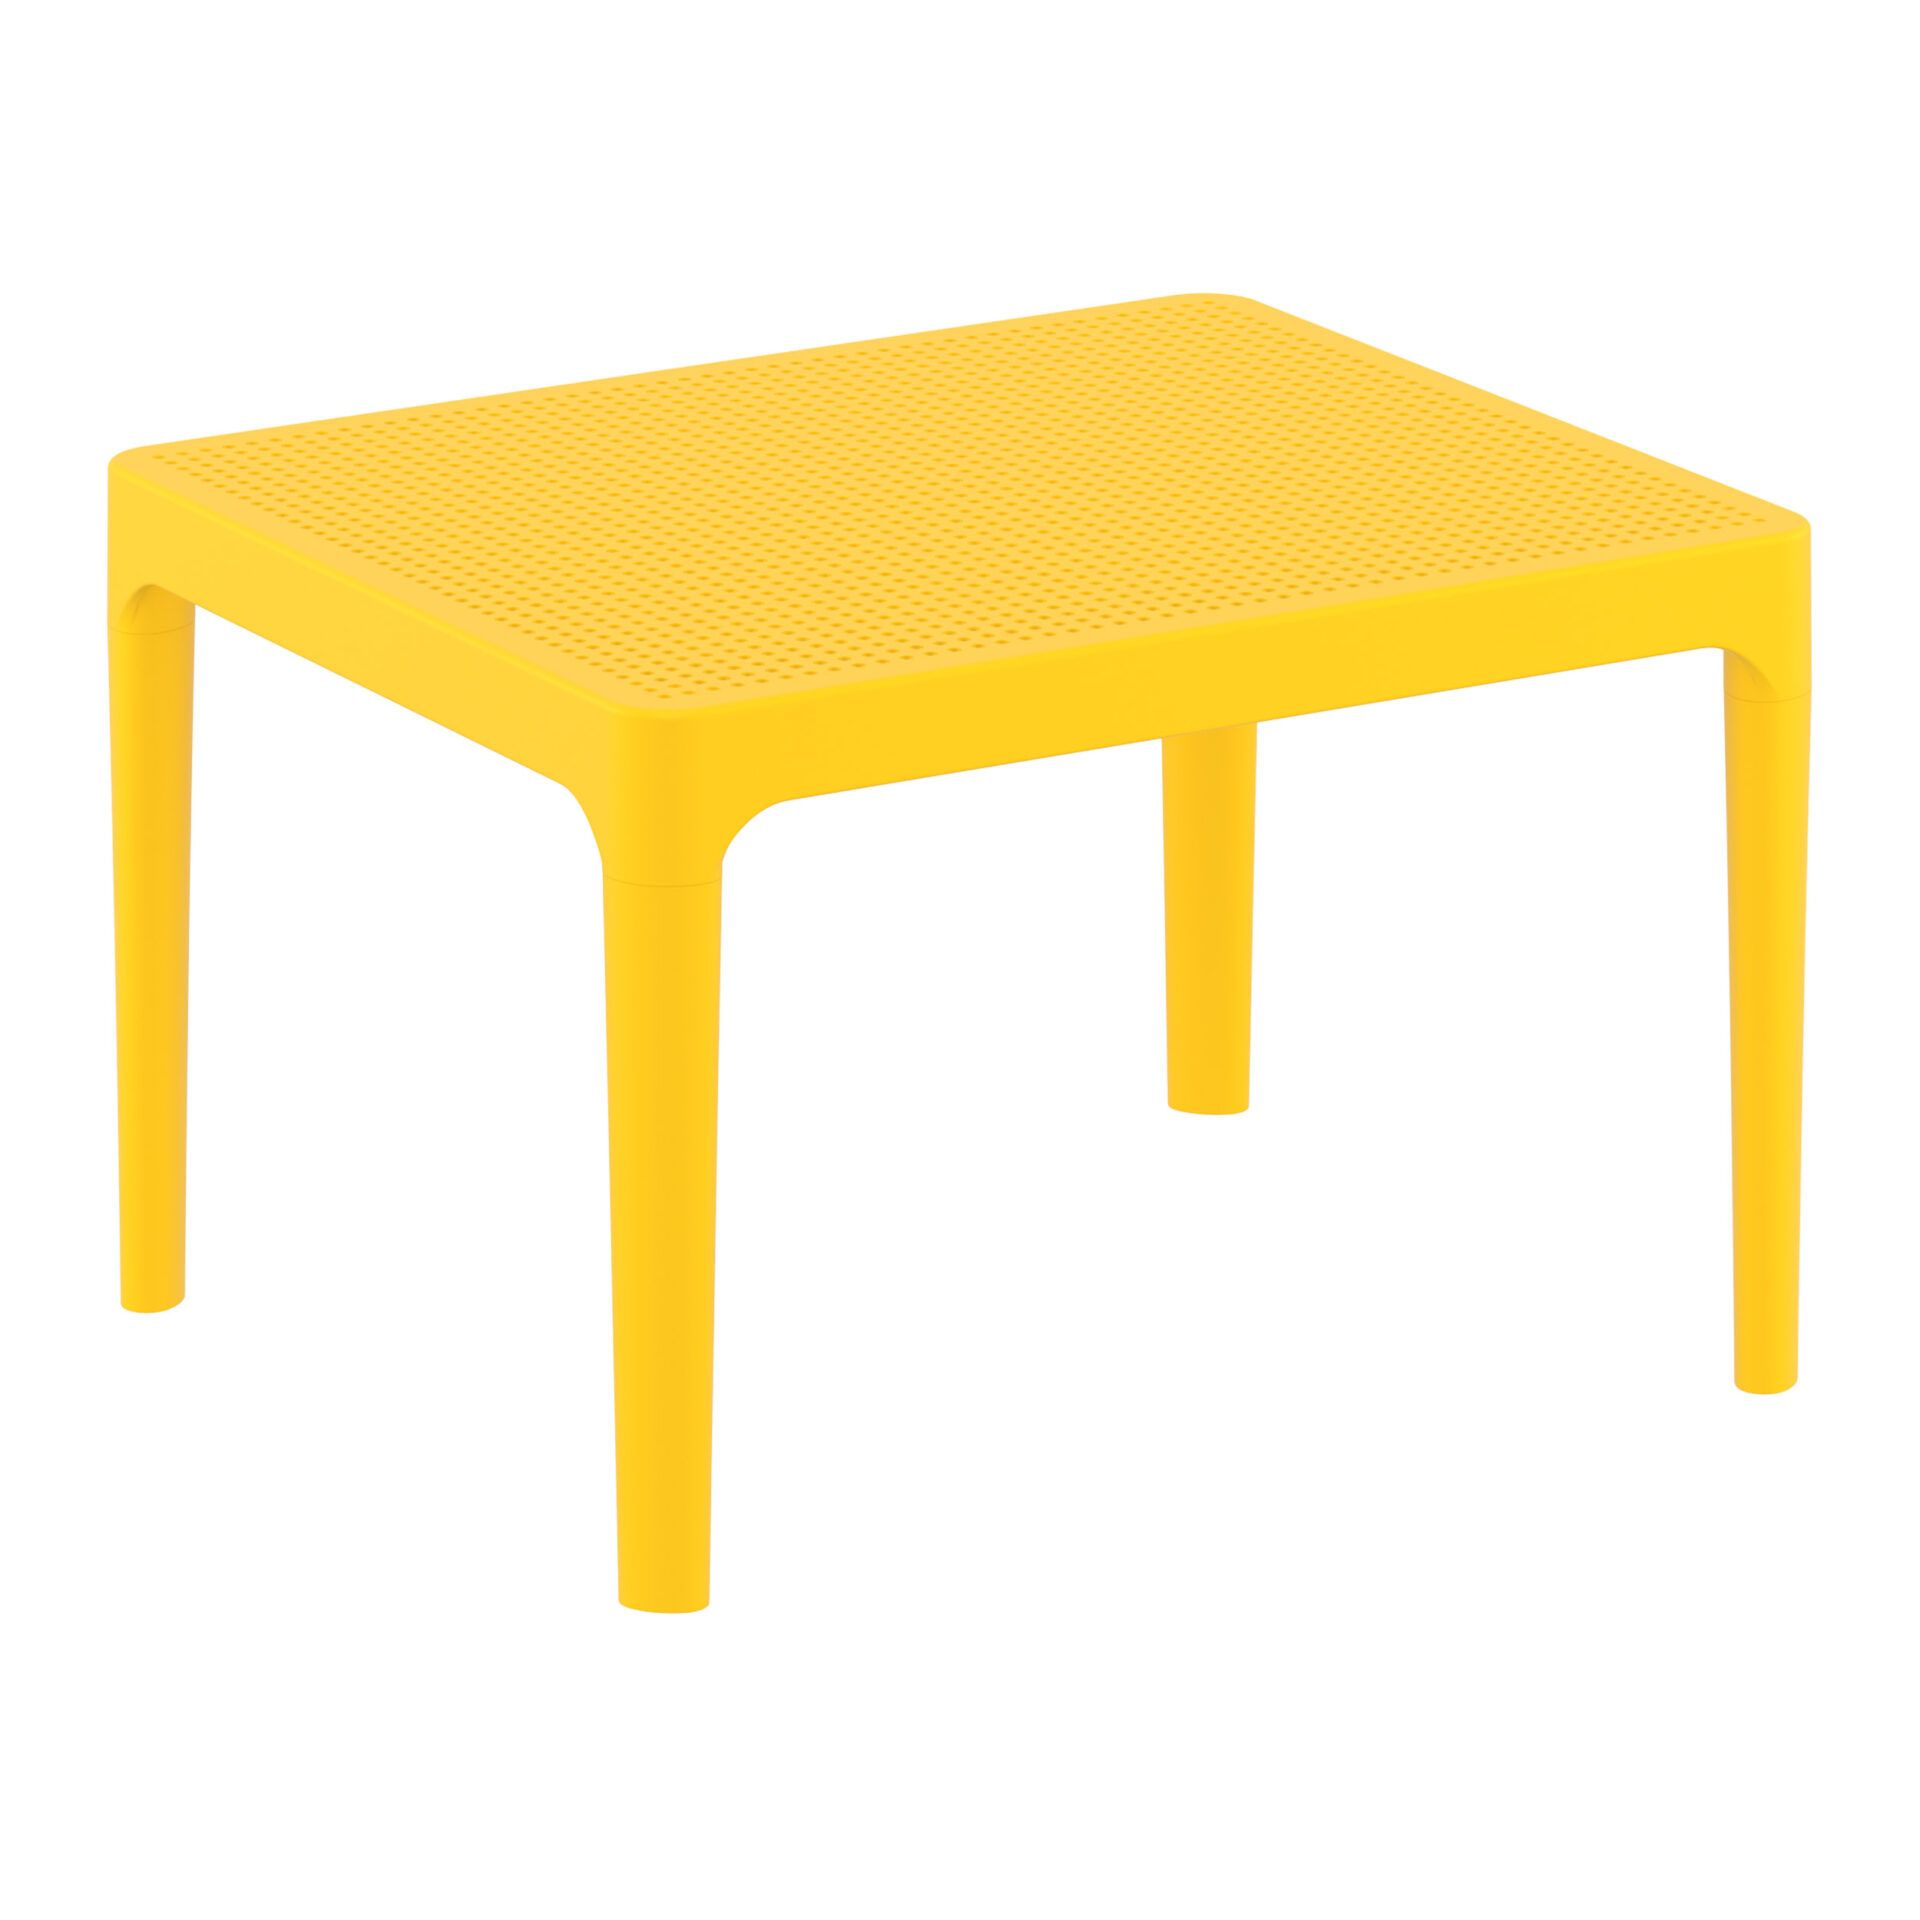 polypropylene outdoor sky side table yellow front side